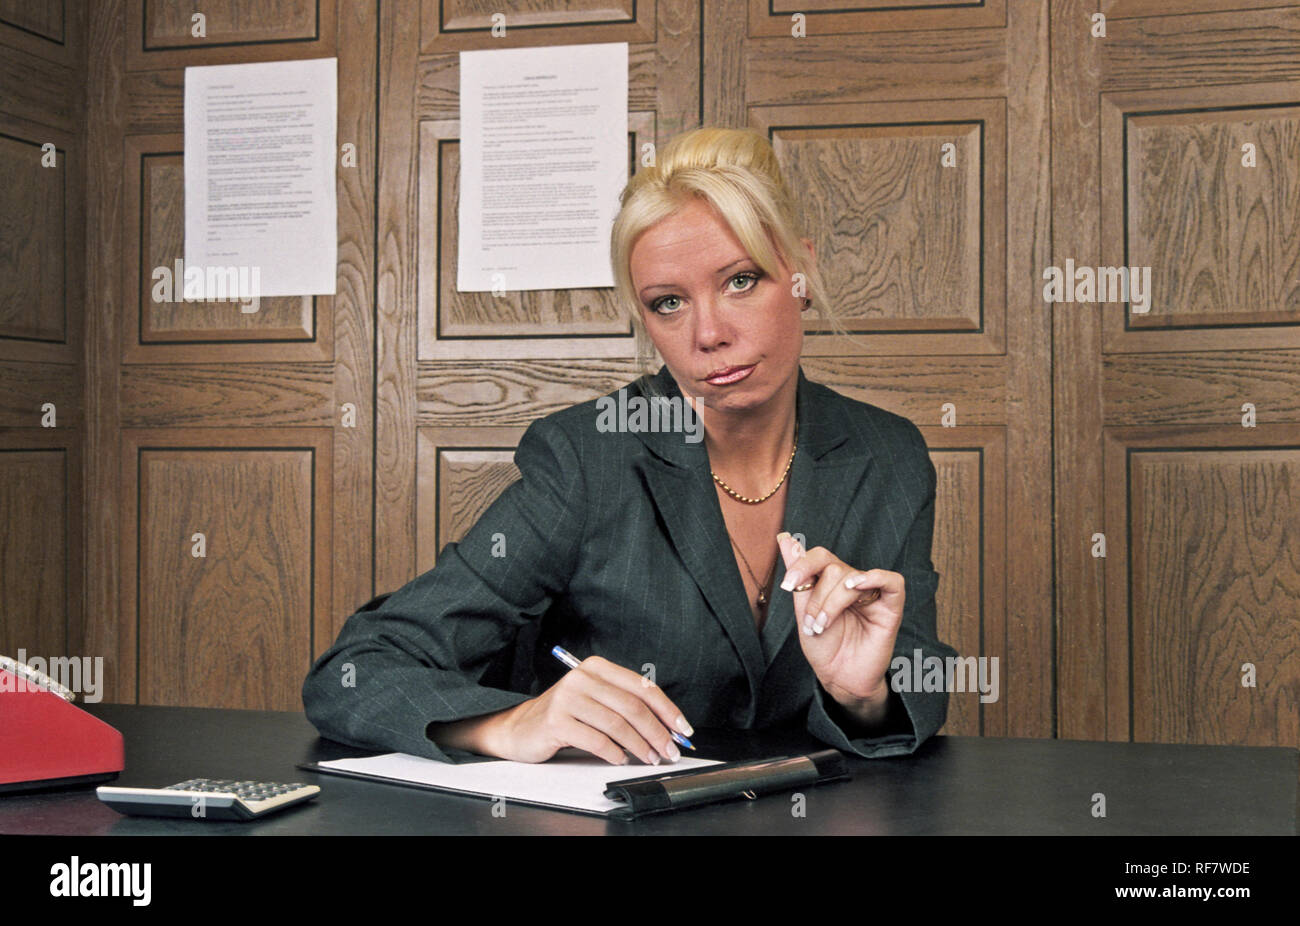 Businesswoman sitting behind desk in wood panelled office - Stock Image